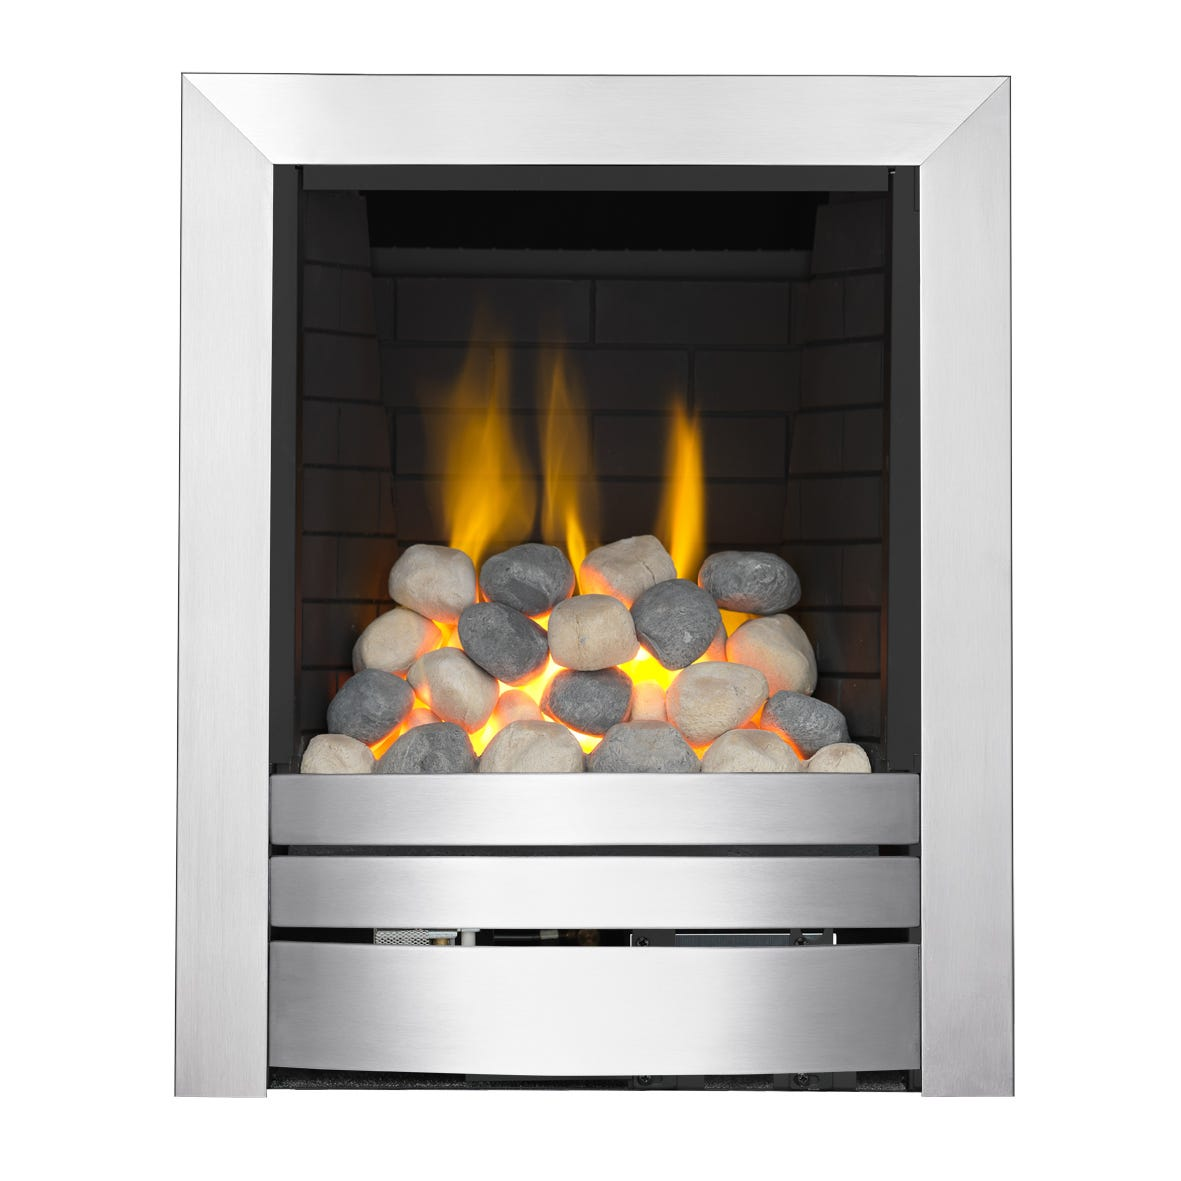 Focal Point Fires Lorient Brushed Steel Full Depth Radiant Gas Fire - Chrome